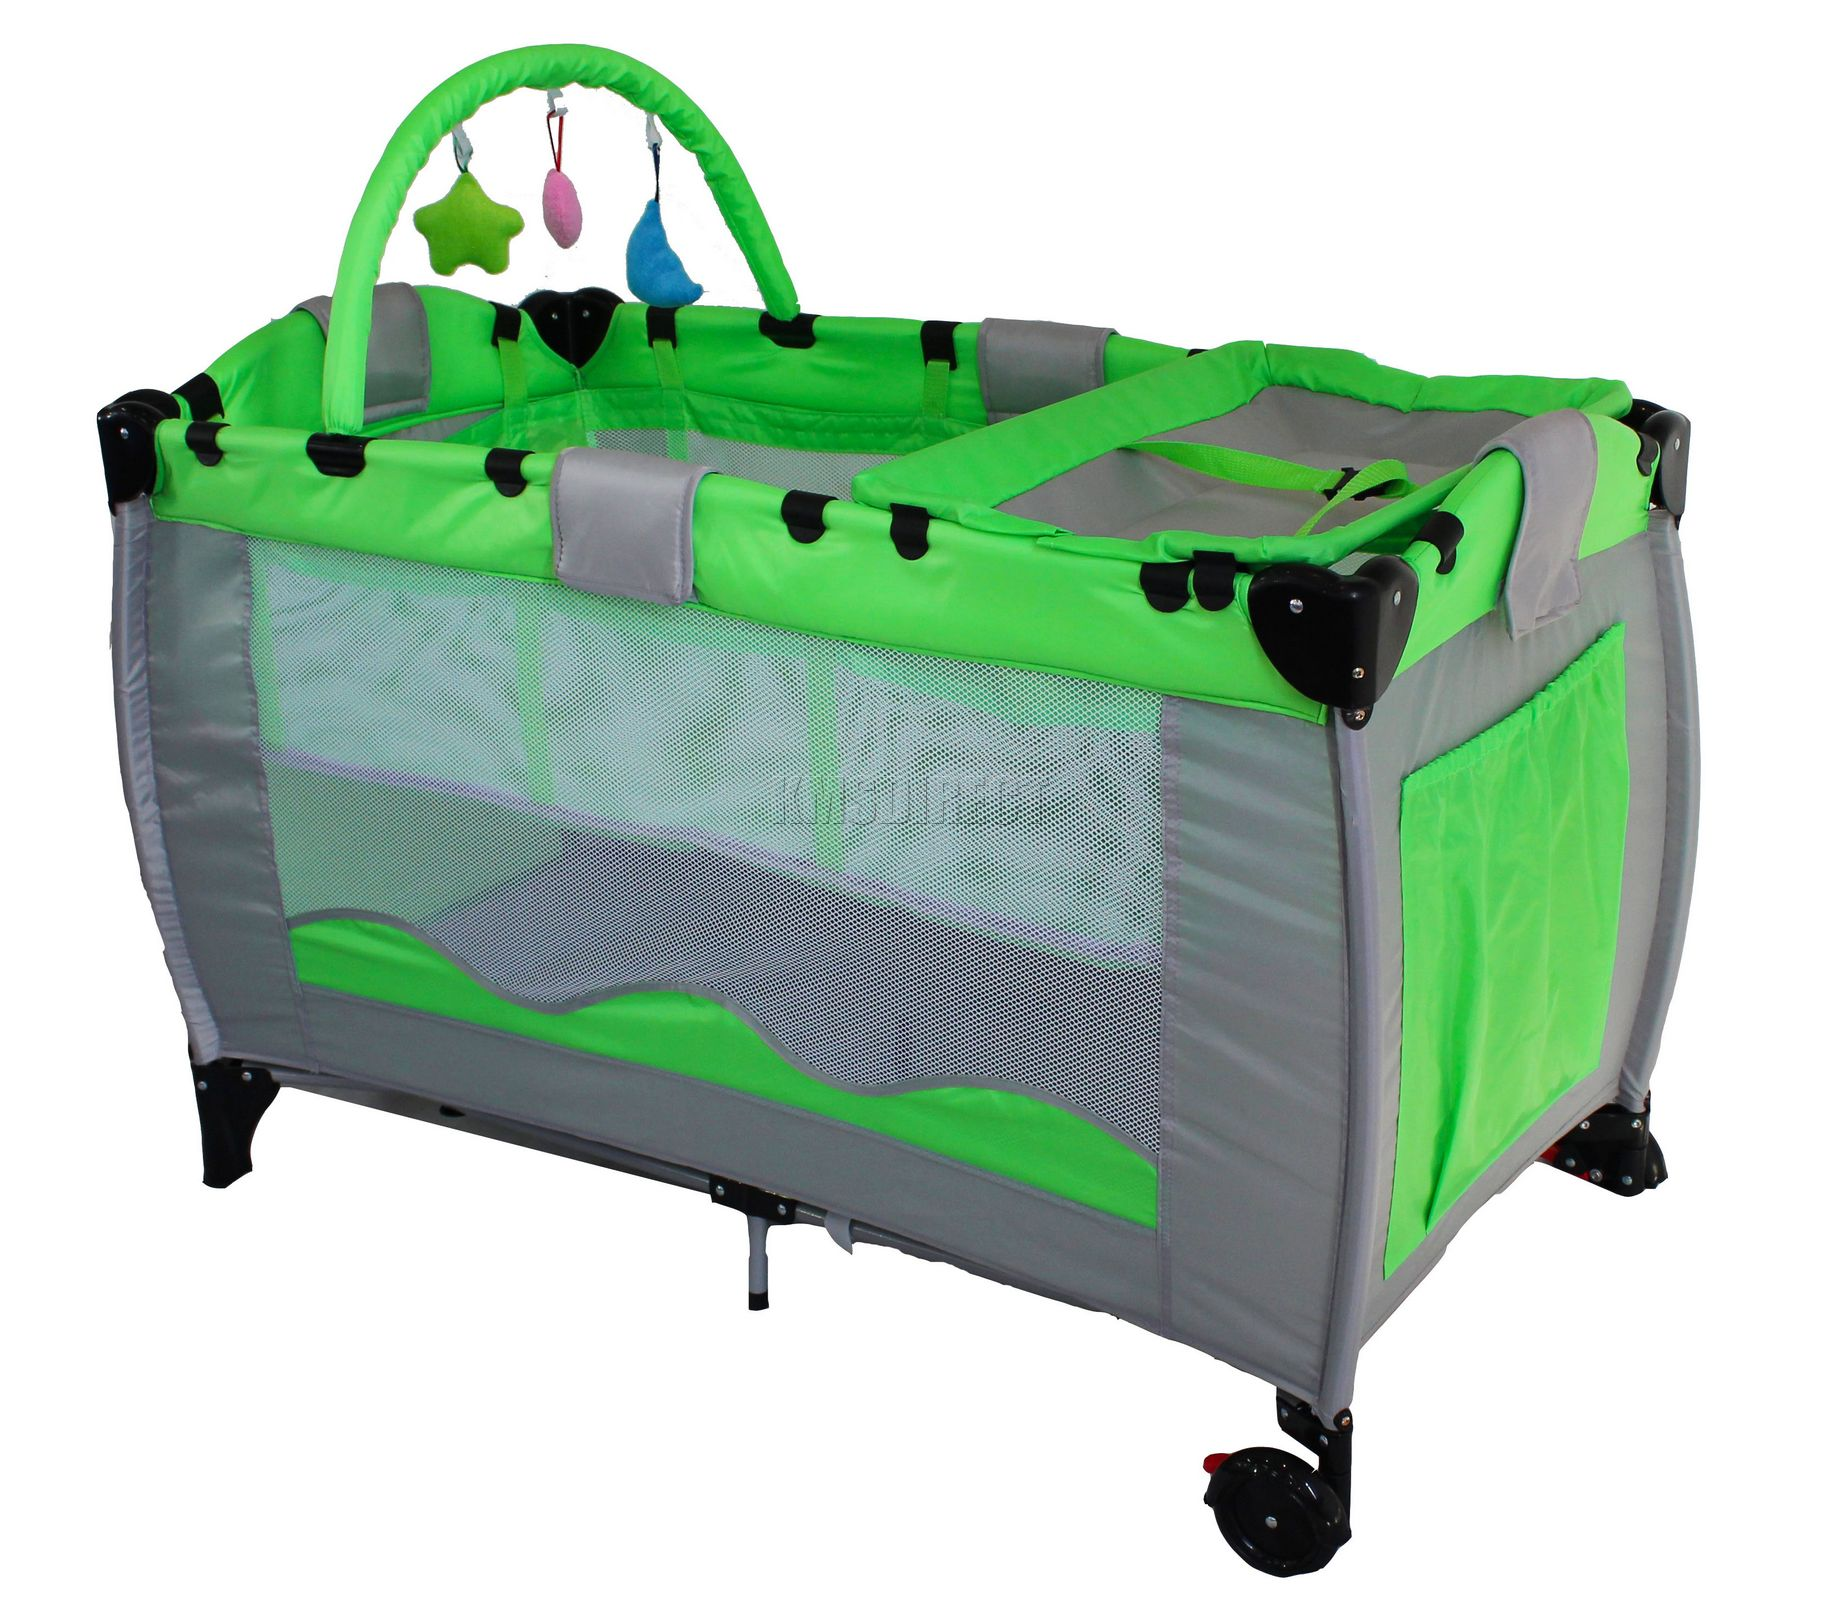 Baby Travel Toys : New green portable child baby travel cot bed bassinet